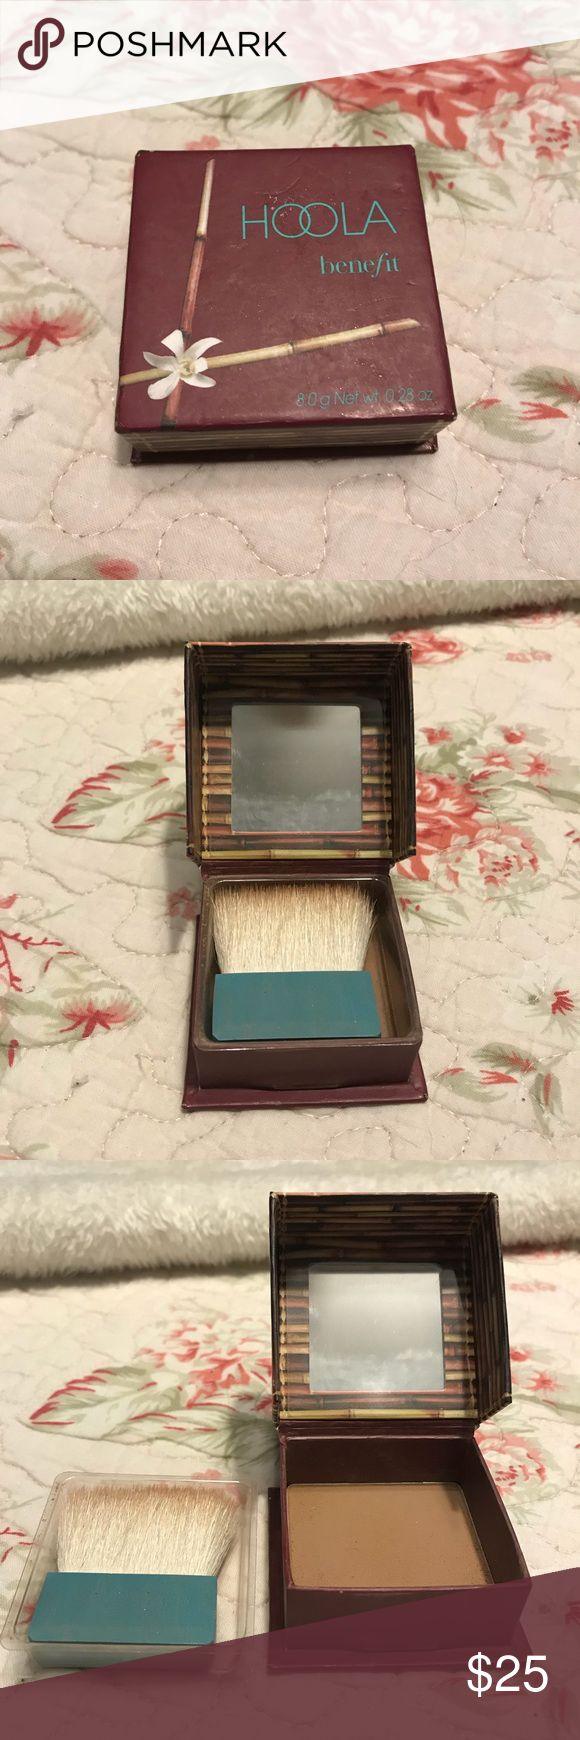 Benefit Hoola Bronzer Benefit's Hoola Bronzer in natural bronze. Lightly used. Default brush and plastic where brush sits on top of the powder. Looking for $25 OBO. Benefit Makeup Bronzer